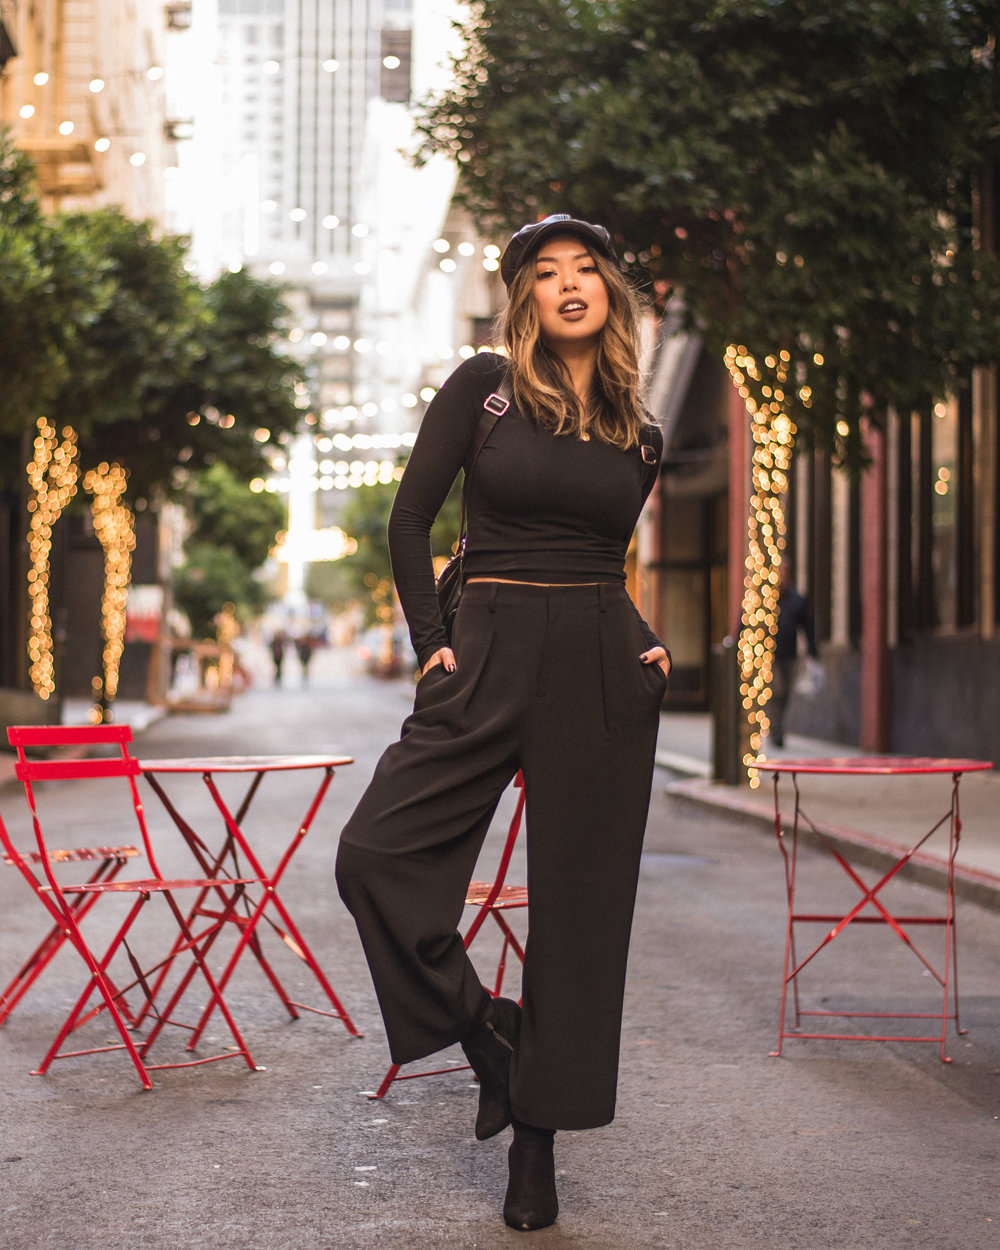 Uniqlo wide leg cropped trousers forever 21 cabby hat newsboy hat rebecca minkoff julian backpack groceries apparel top public desire janine over the knee boots maiden lane victoria ly victorialamode